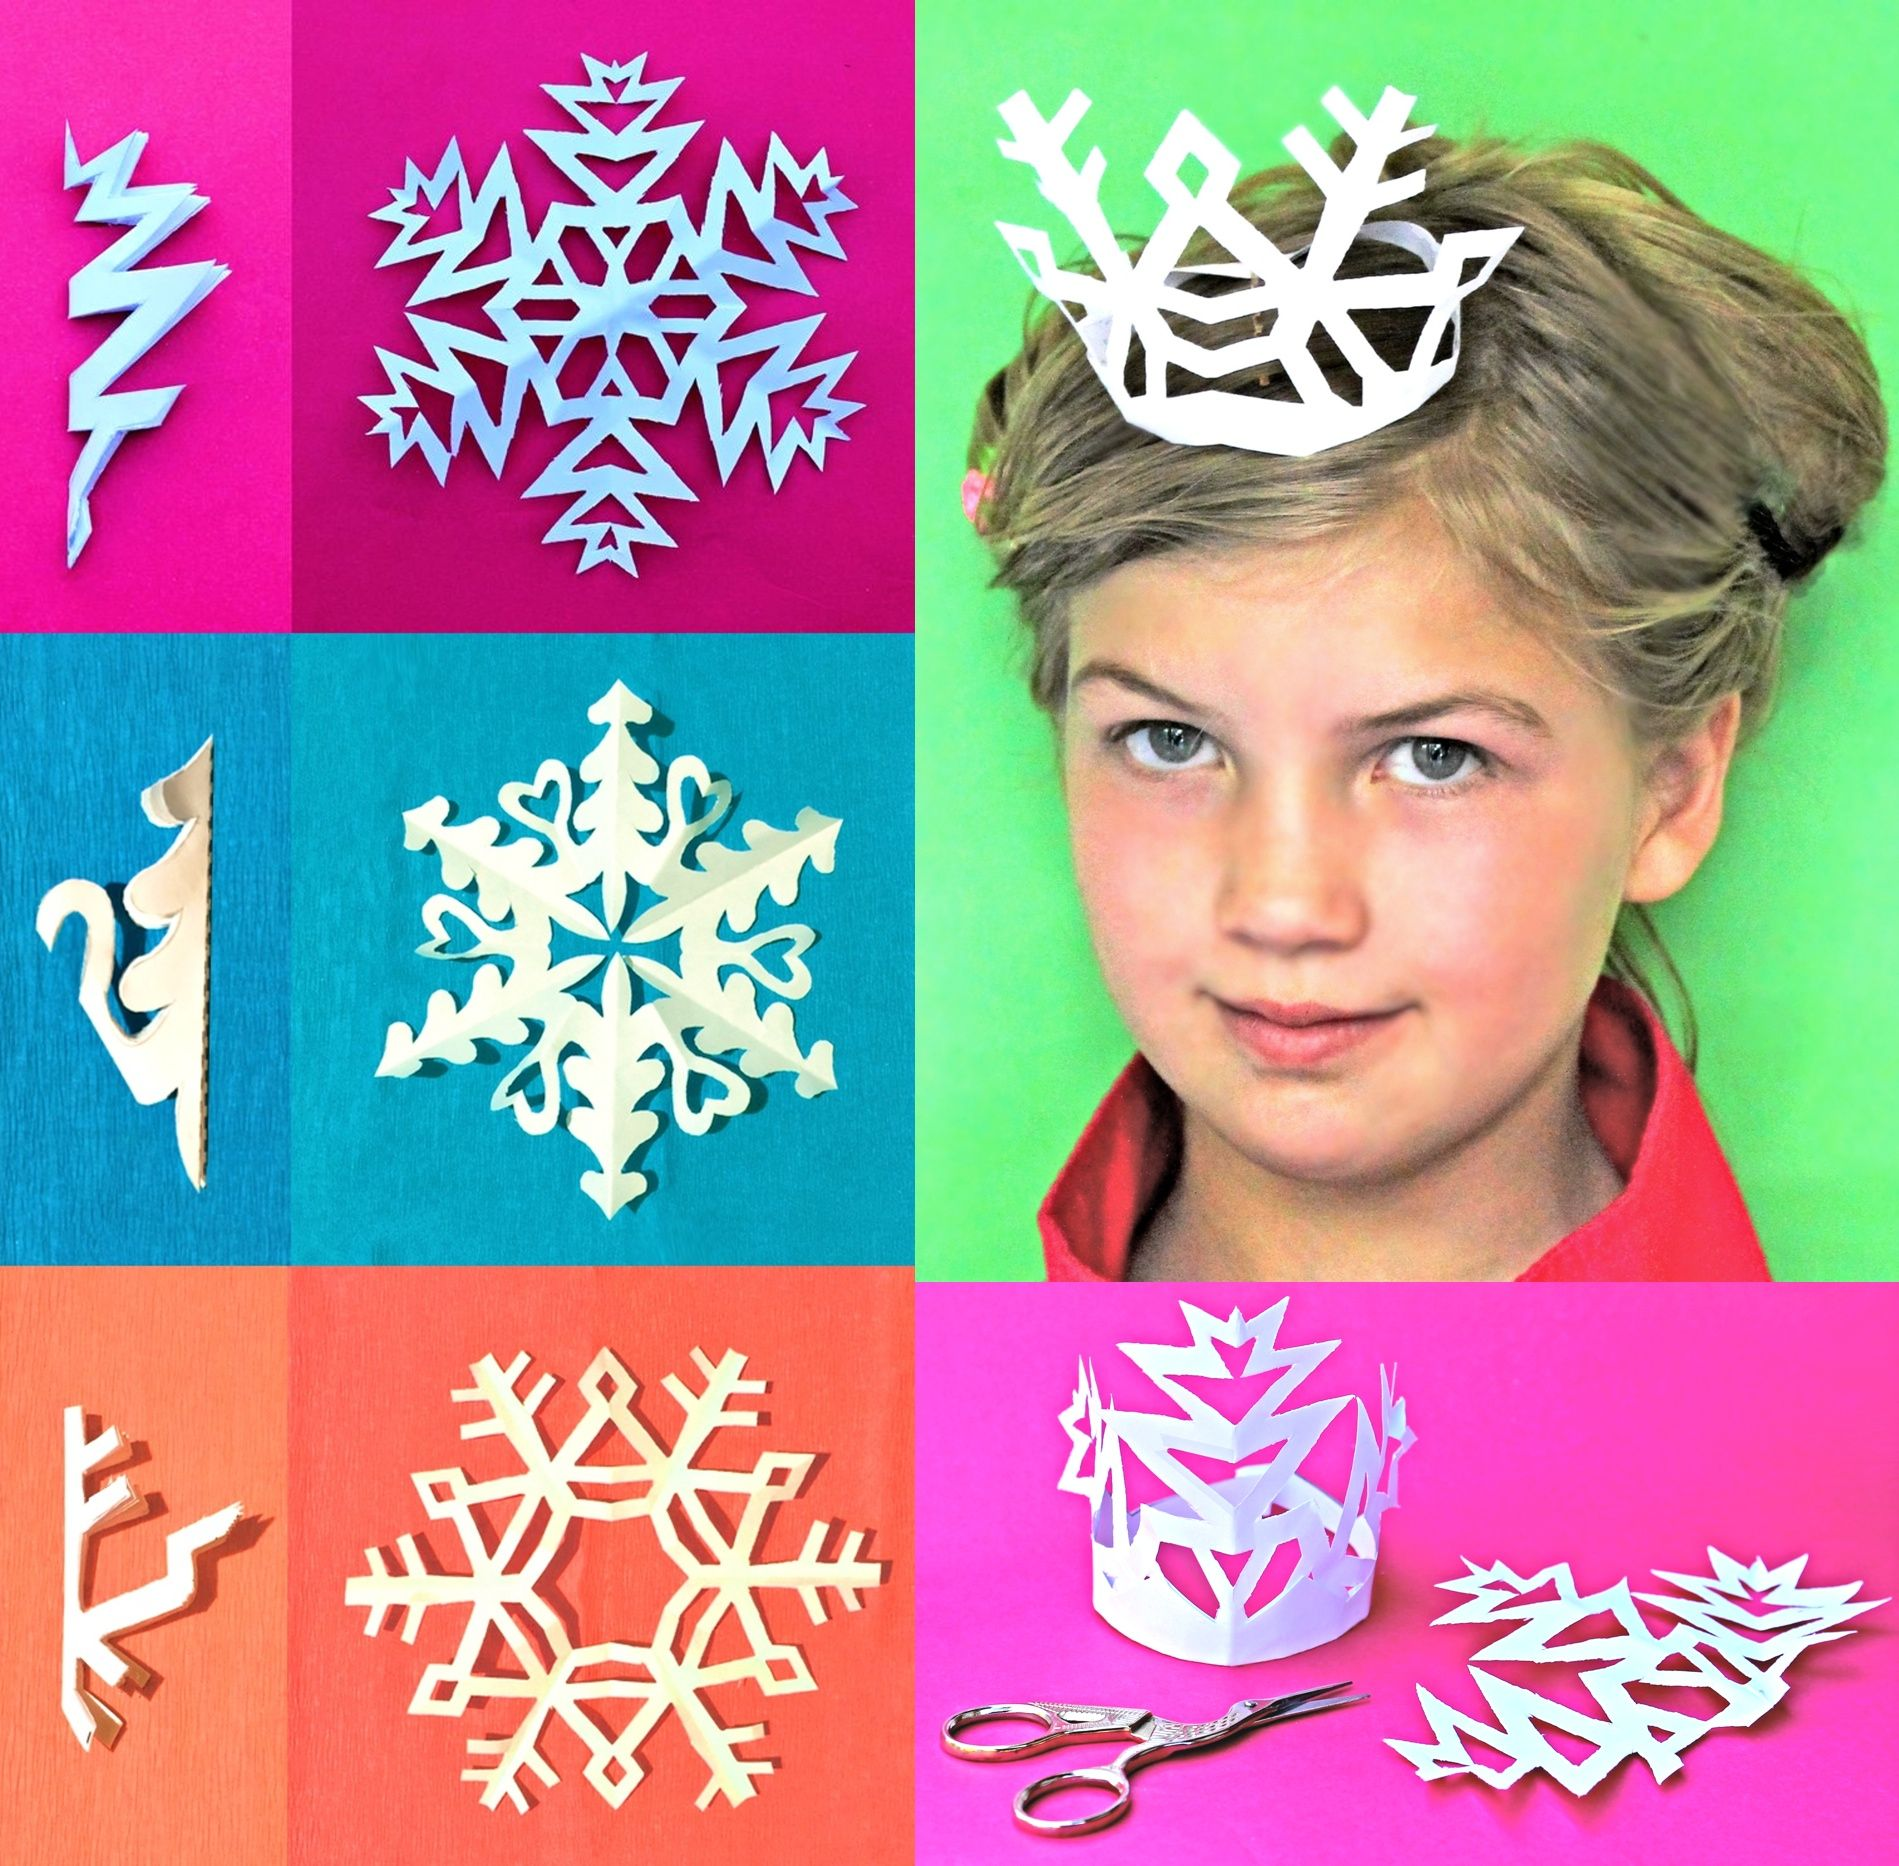 Snowflake Crowns Tutorial And Templates By Happythought